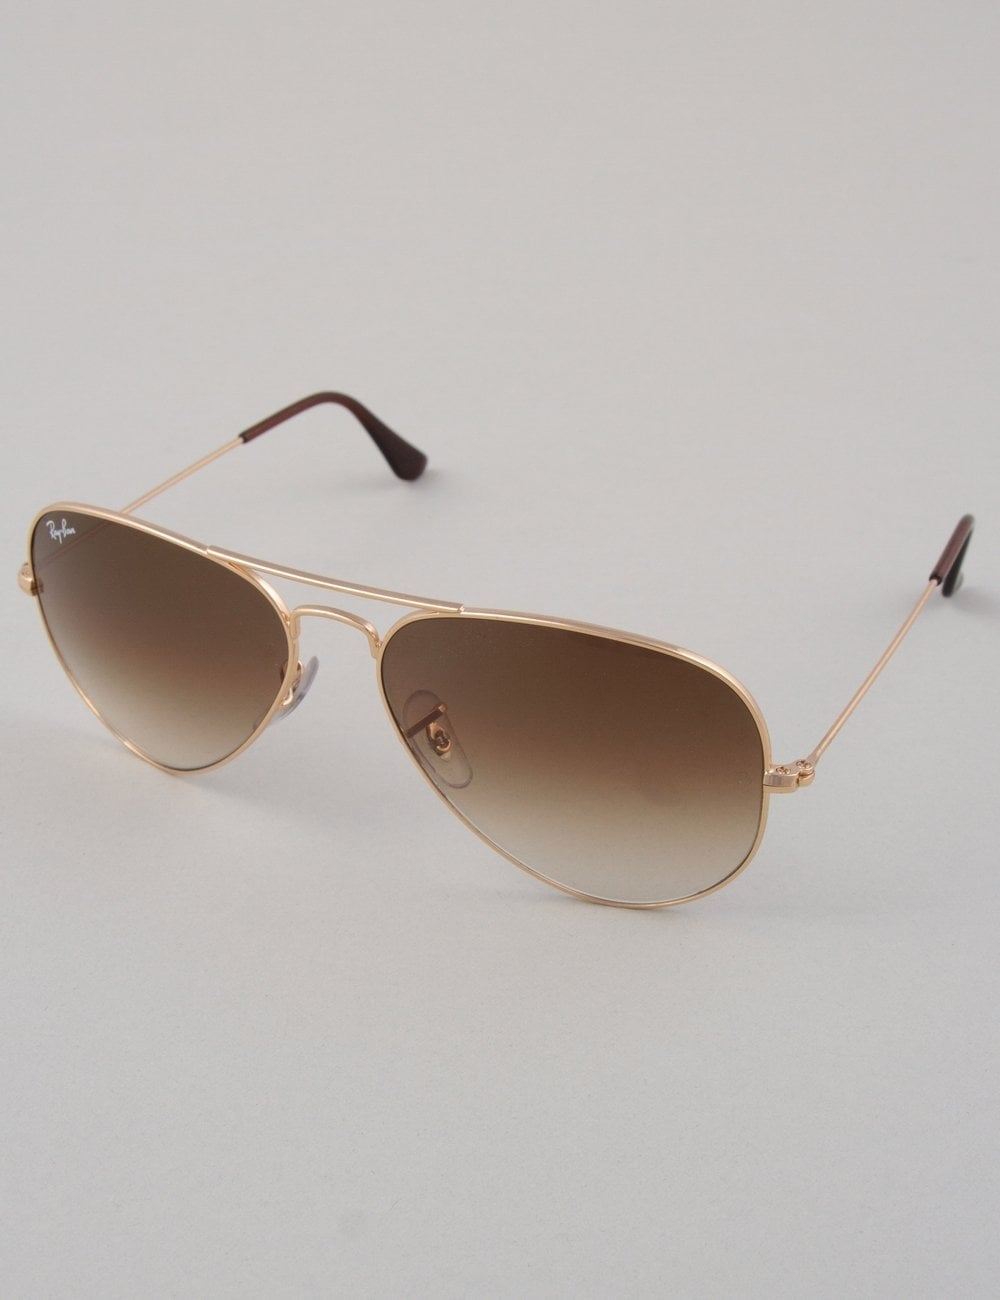 e31052c715 Ray-Ban Aviator Sunglasses - Gold    Crystal Brown - Accessories ...